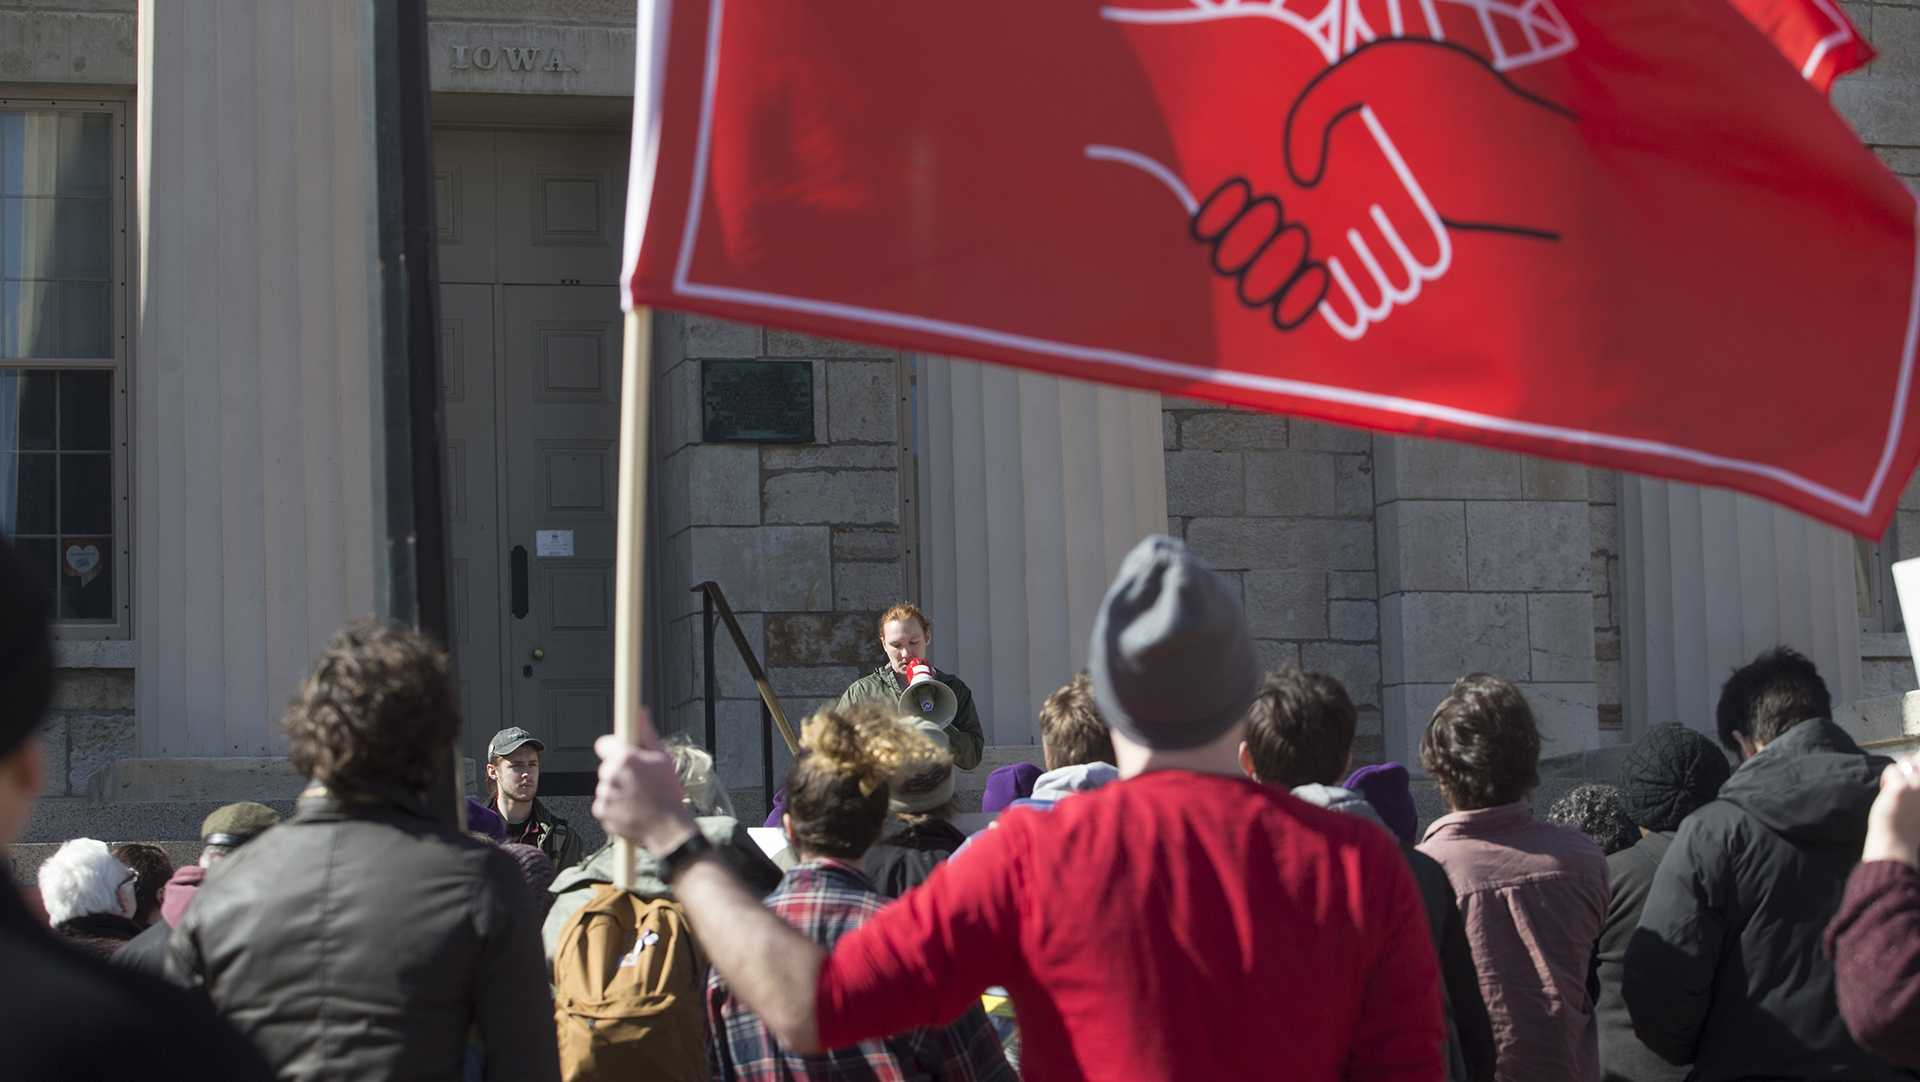 Bill Harshbarger hoists a Democratic Socialists of America  flag as undergraduate students speak to show solidarity during a COGS protest on the Pentacrest Feb. 26, 2018. COGS, or Campaign to Organize Graduate Students, led a rally to raise awareness for the Supreme Court Janus case, which will negatively impact the ability to form unions and wages amongst public workers. (Katie Goodale /The Daily Iowan)